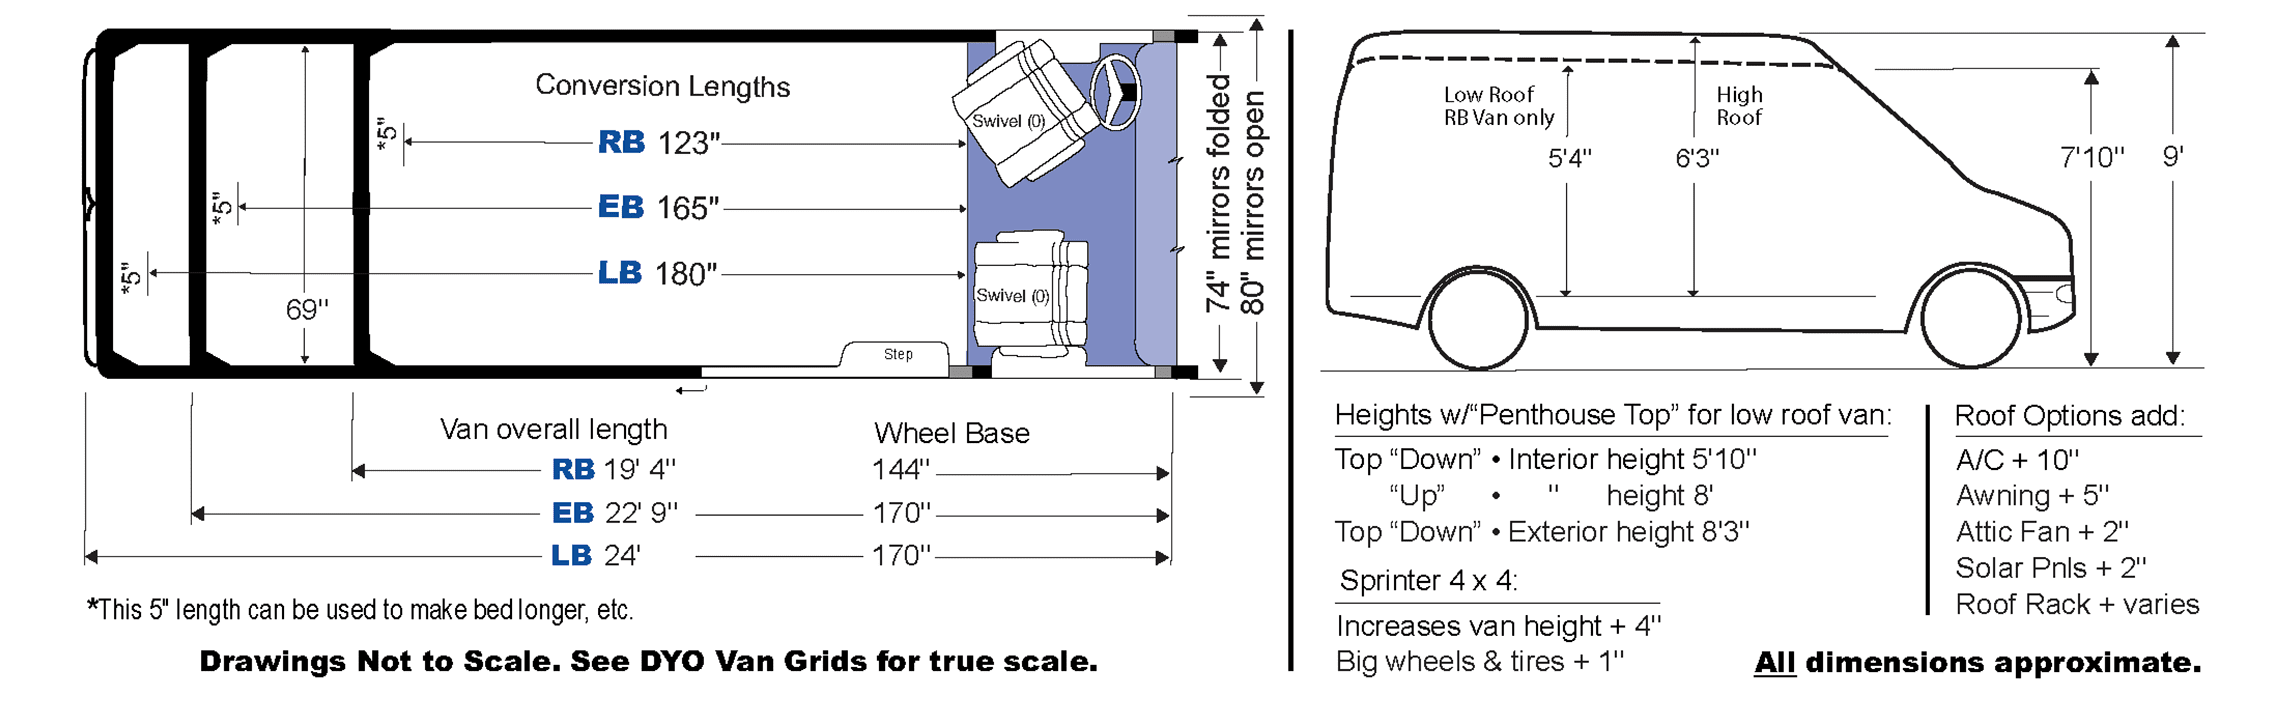 2019 Sprinter Van Dimensions